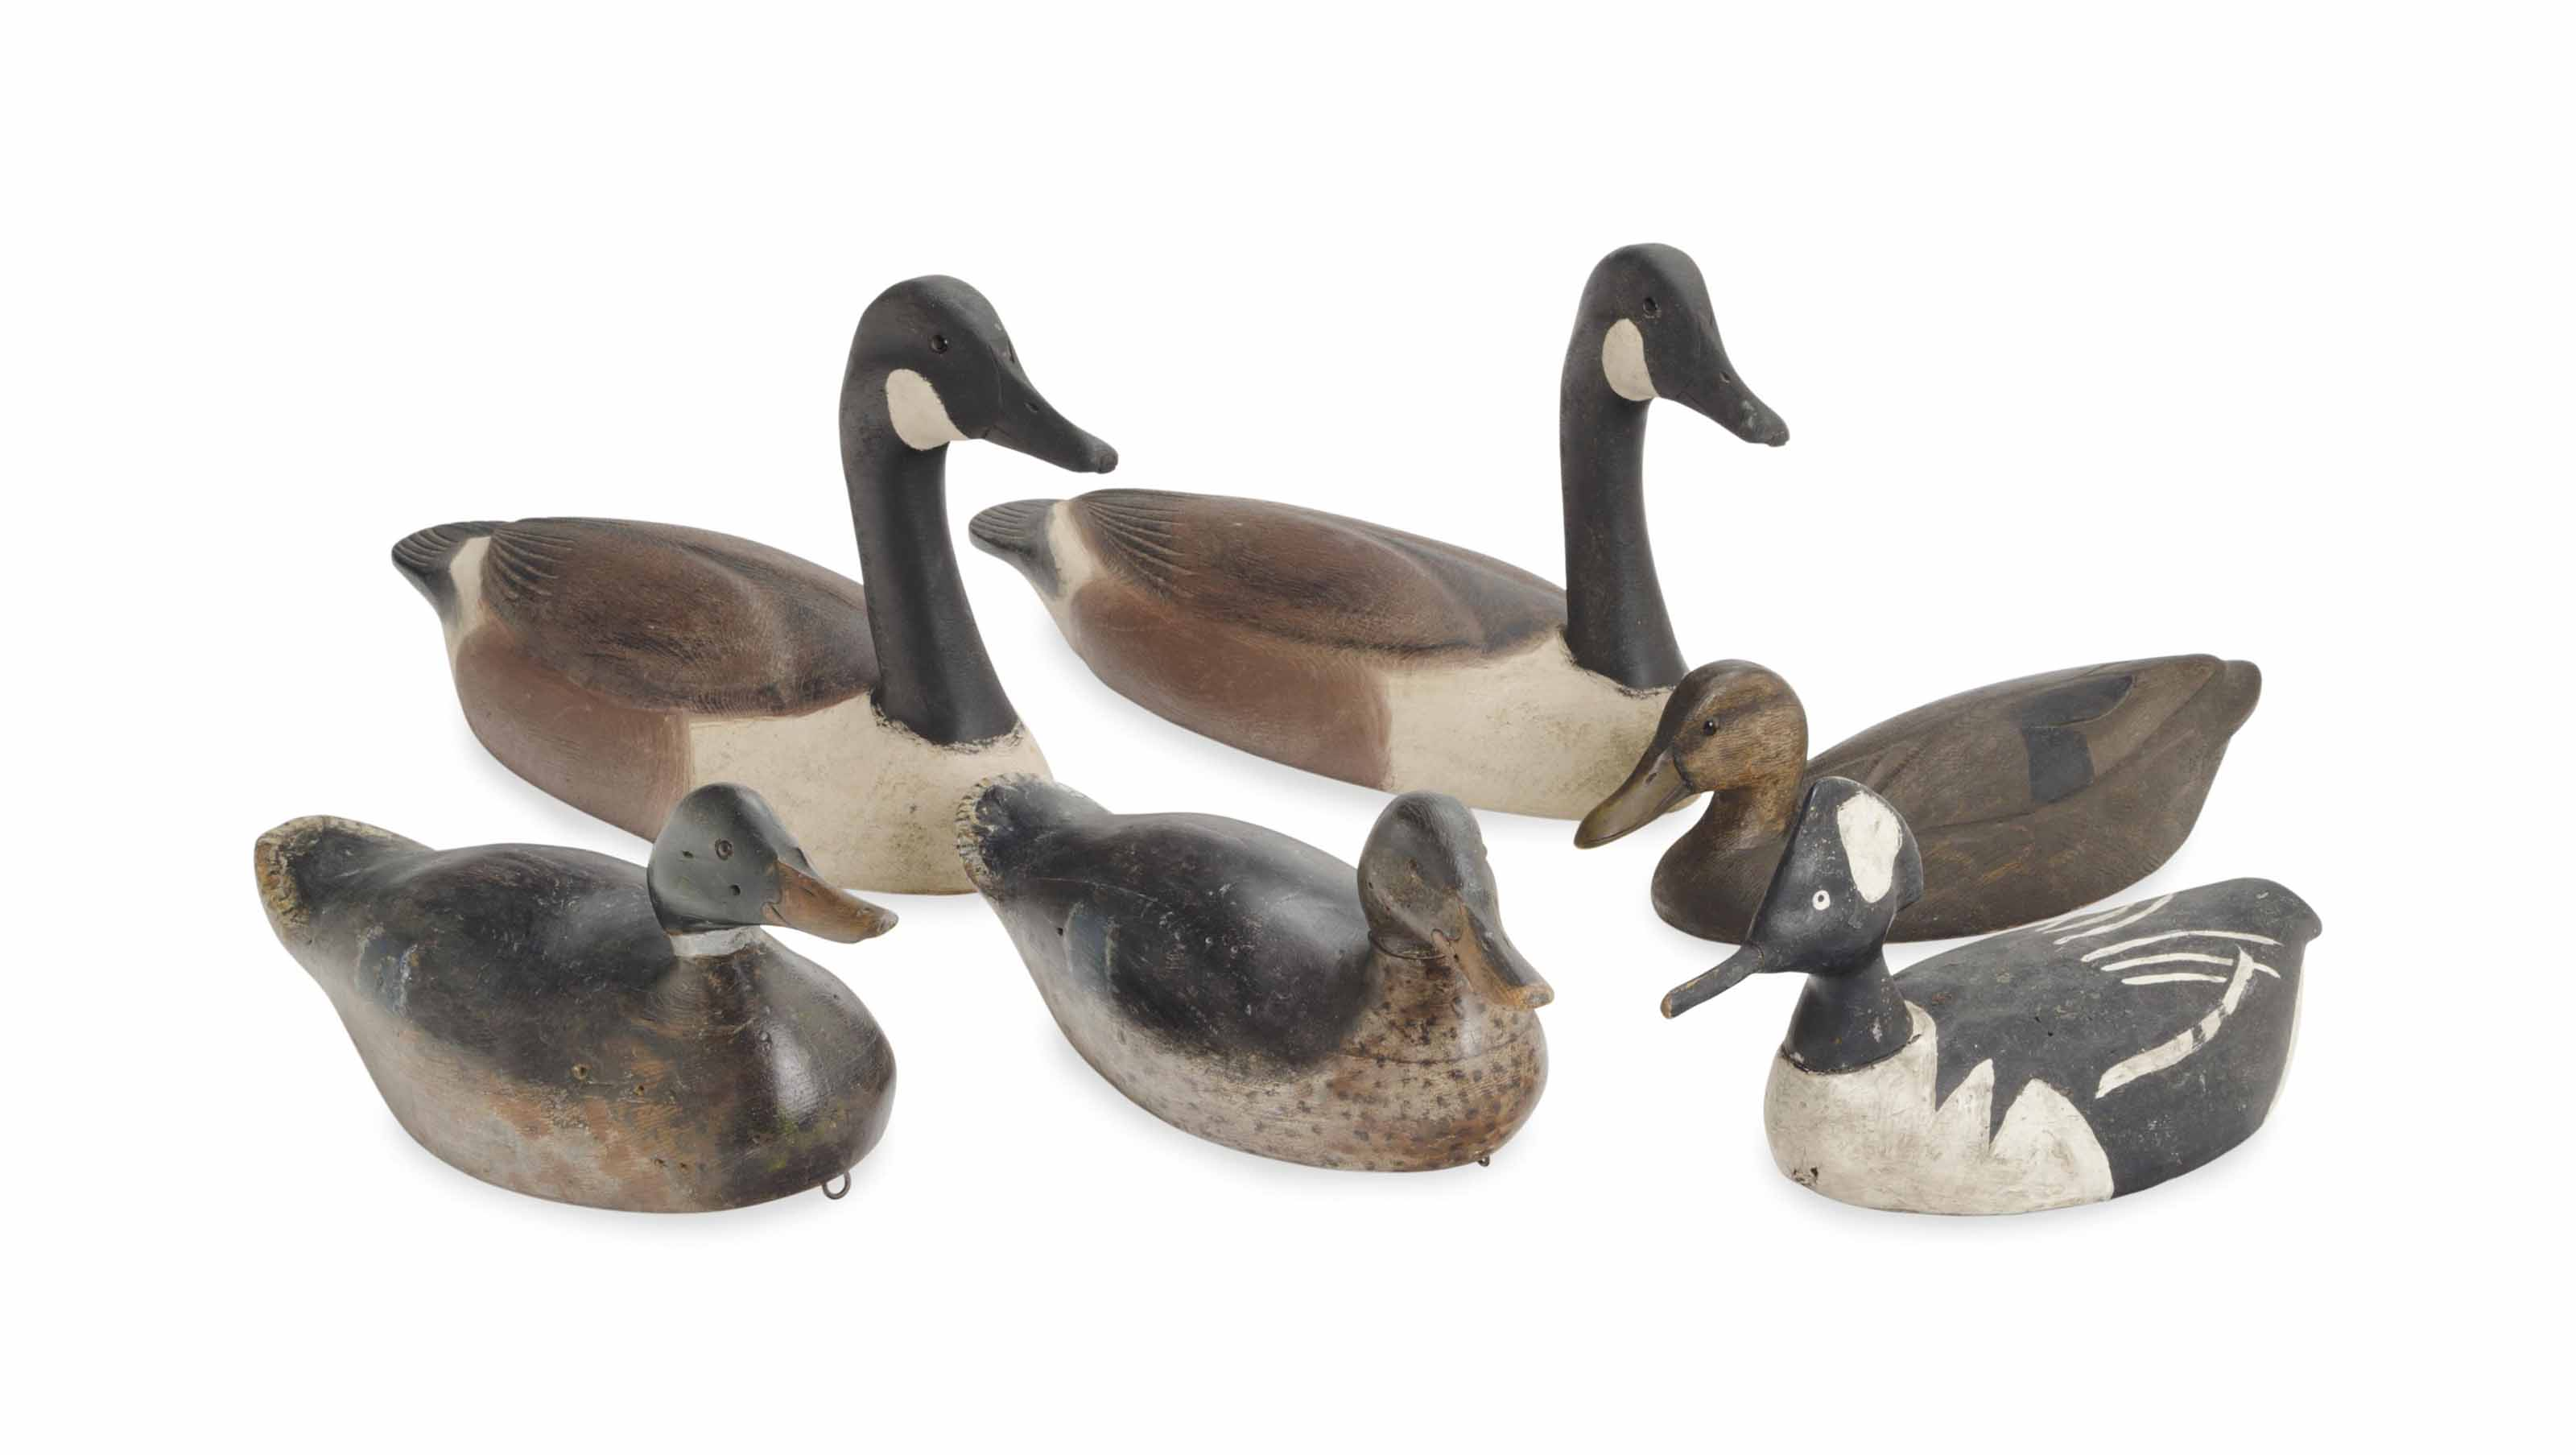 A COLLECTION OF SIX DECOYS,